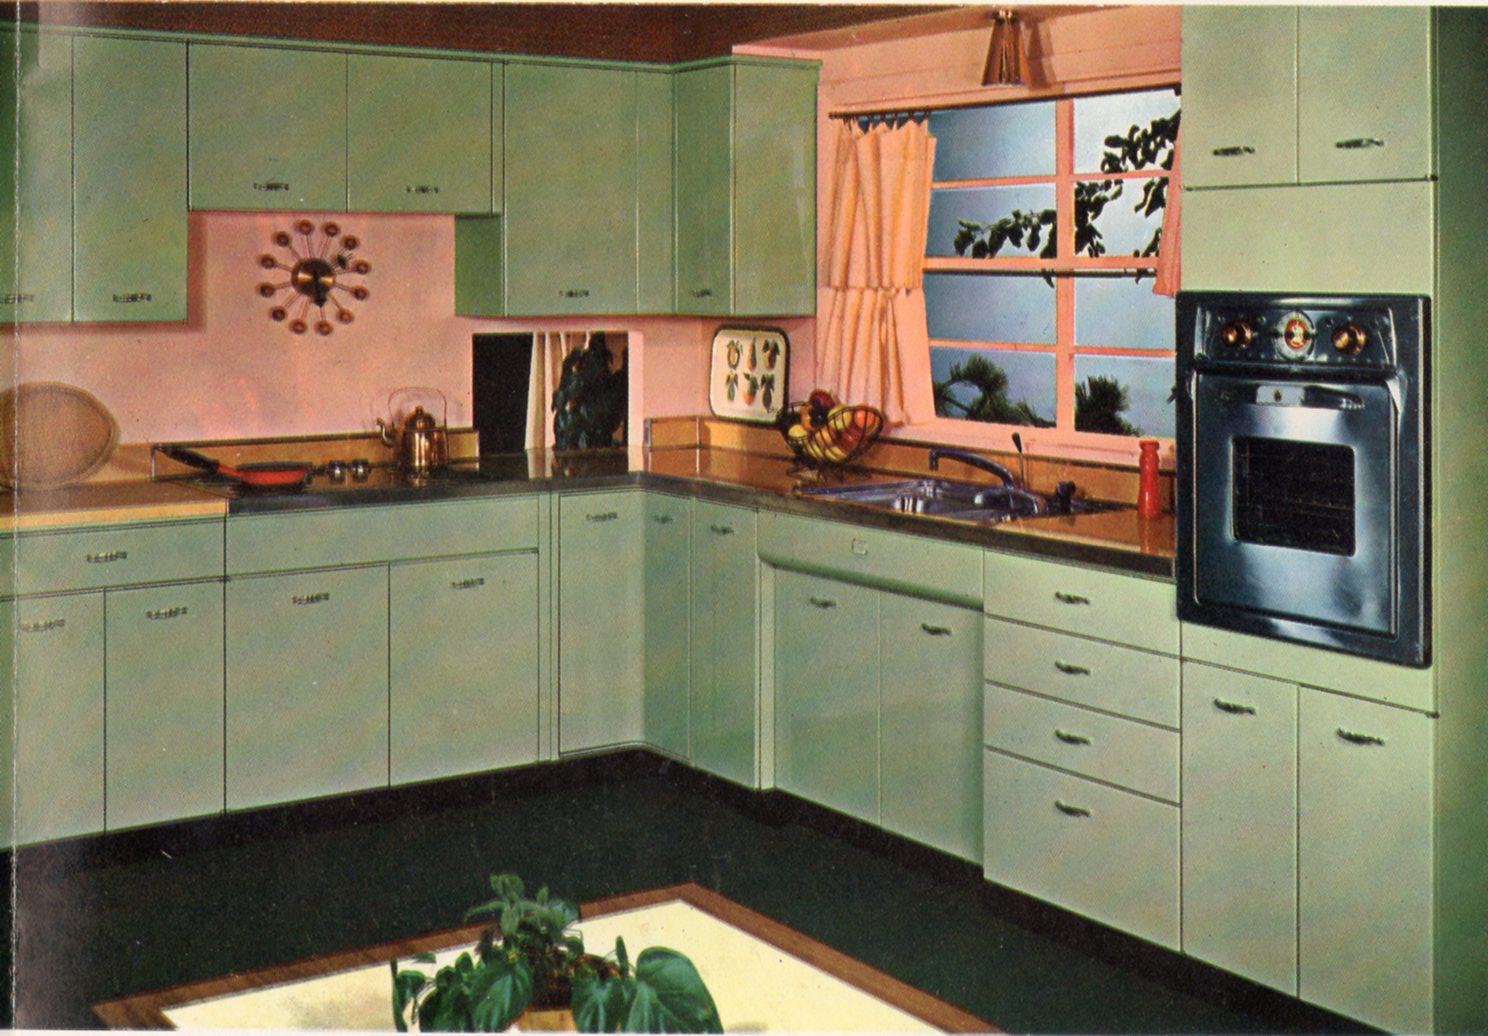 1950 Kitchen Furniture Sexually Explicit Songs From The 1950s No Smoking